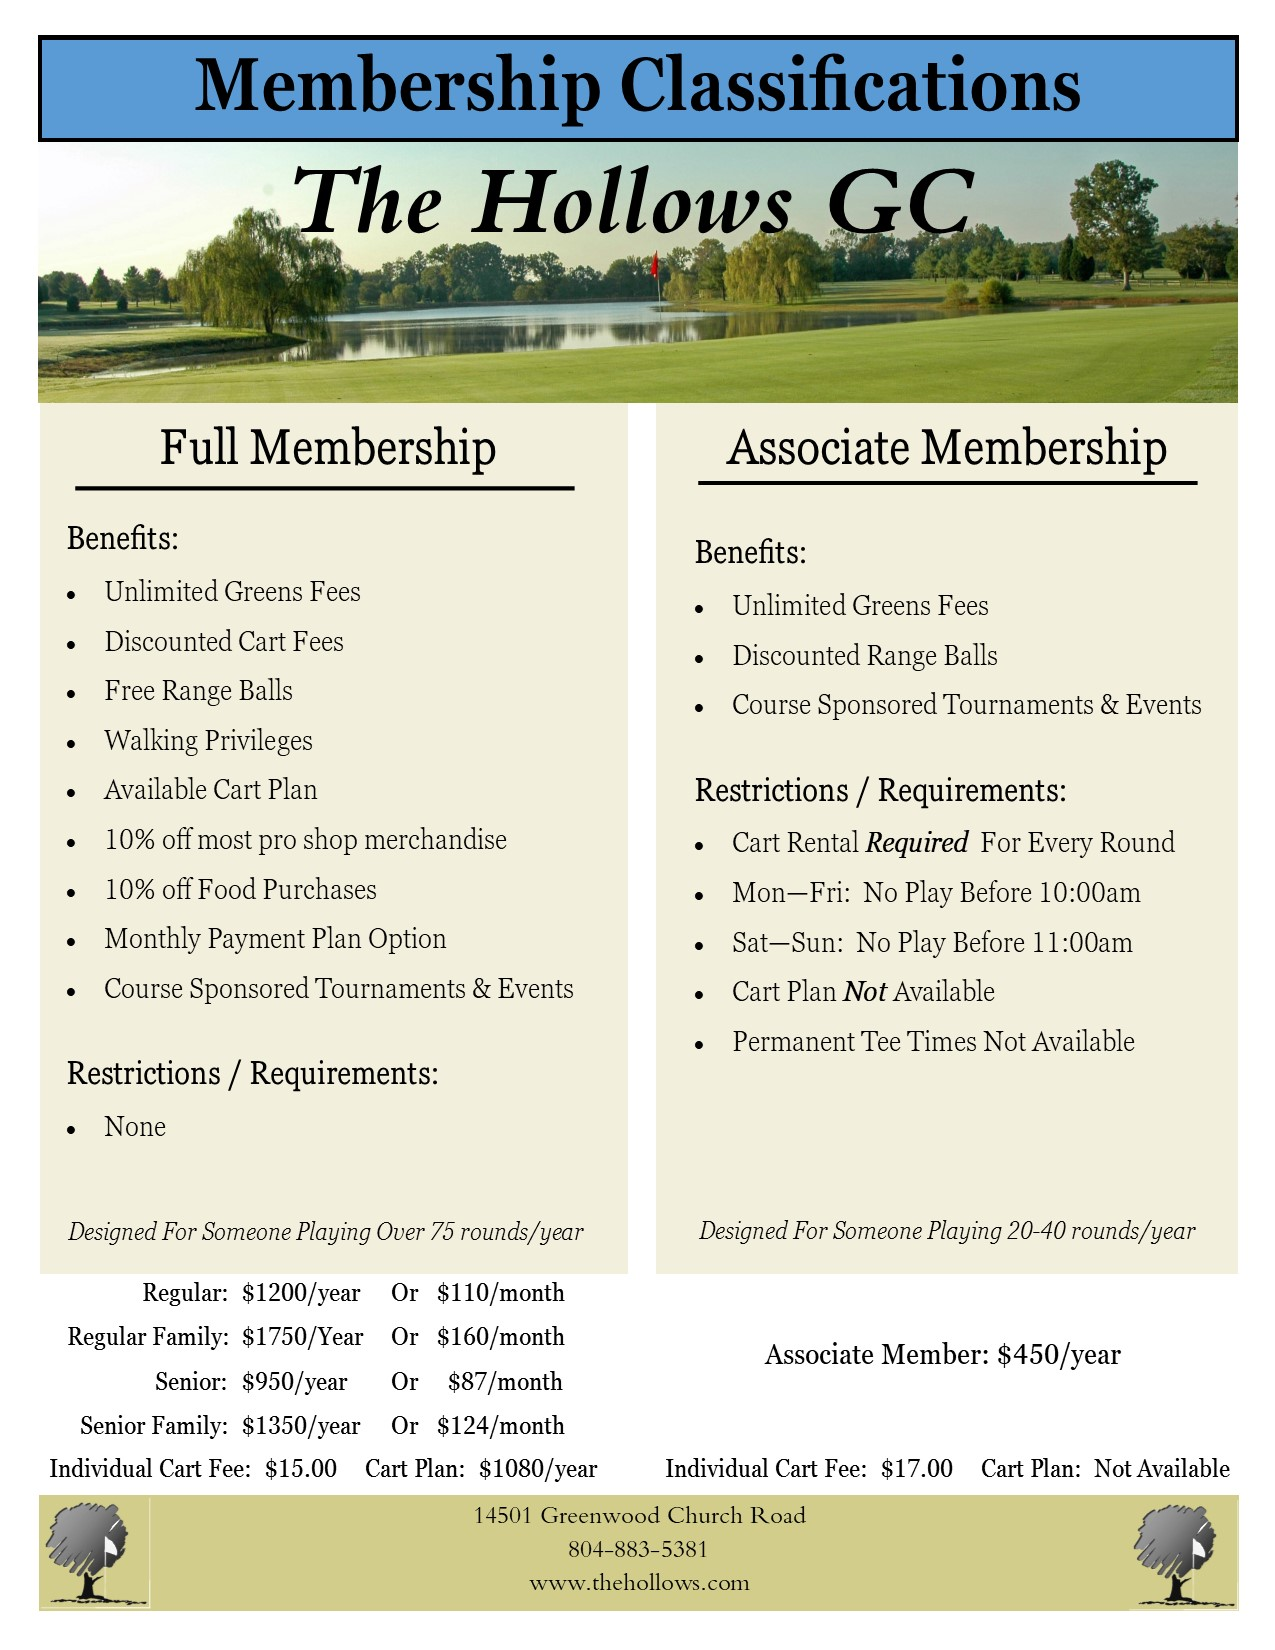 Membership Classifications & Benefits